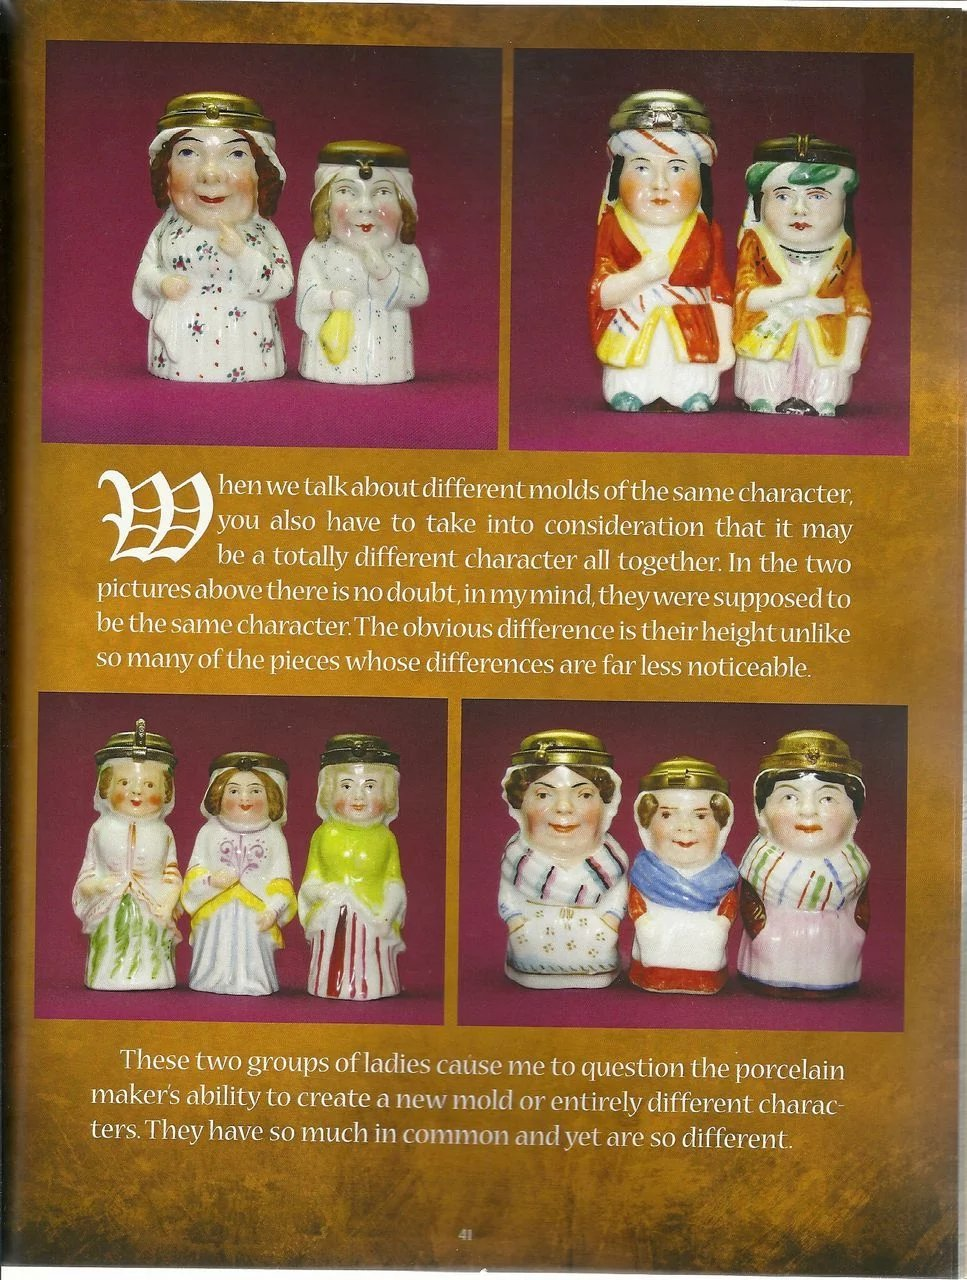 The Mystery of Little People - Porcelain Match Holders, book by Stephen  J Horvat